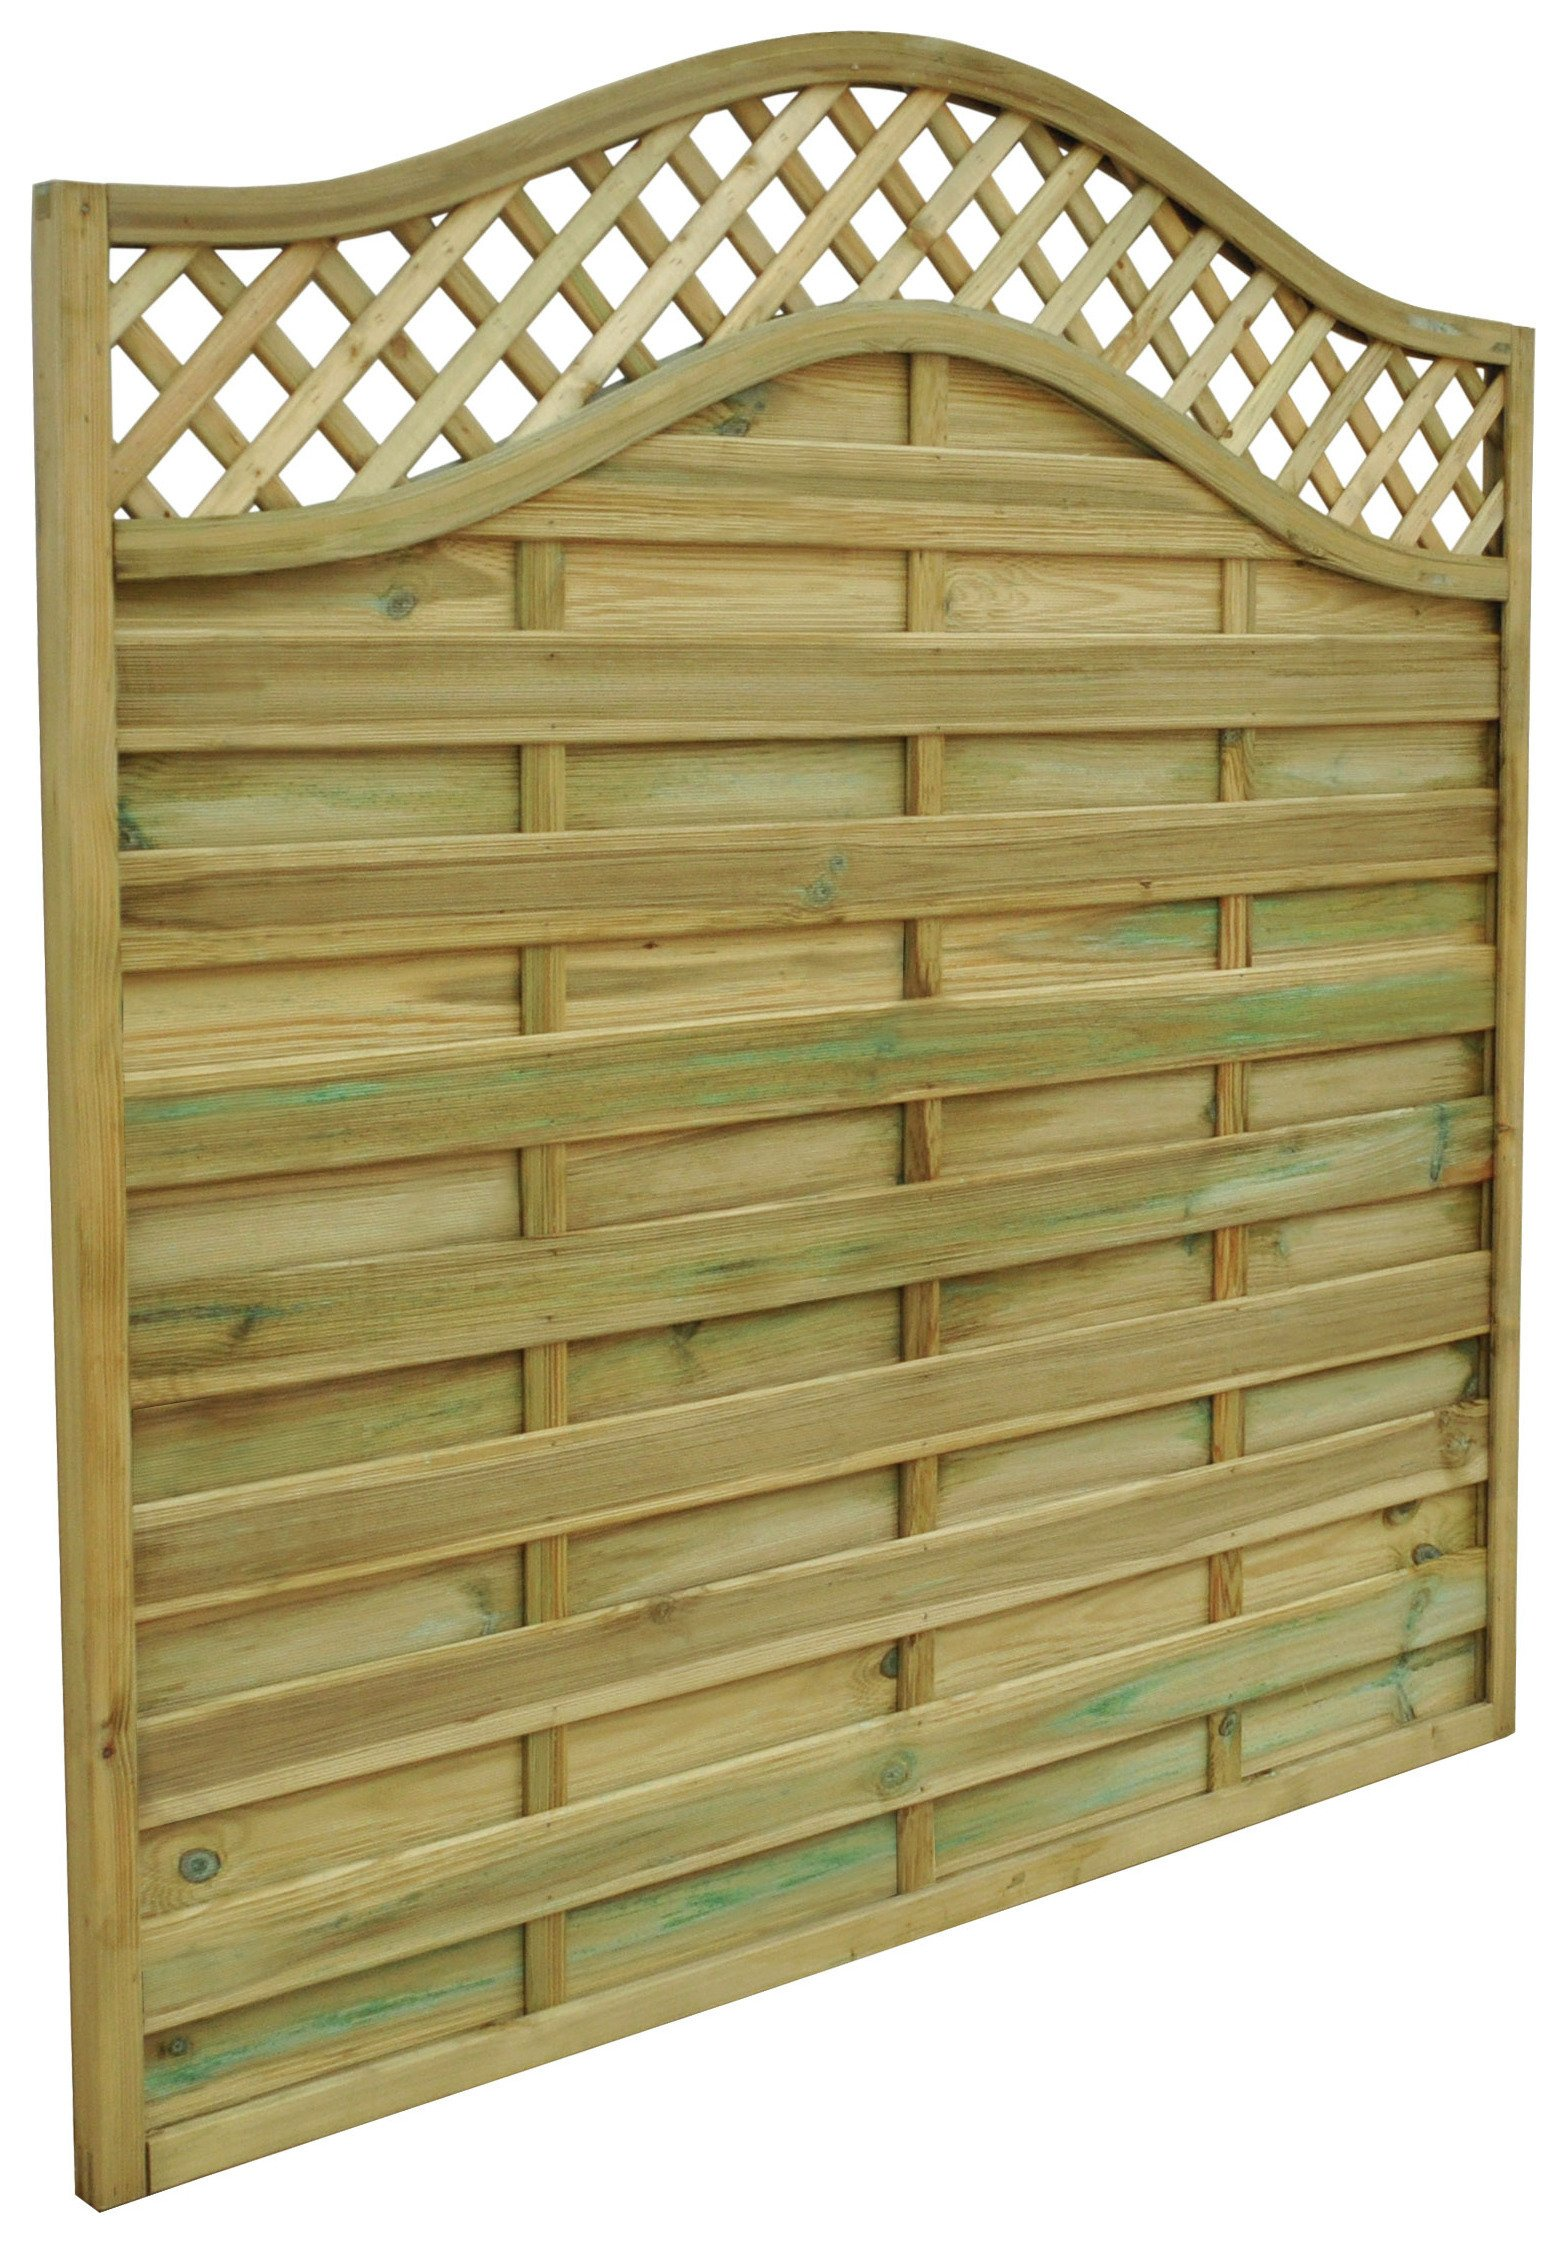 Forest 1.2m Prague Fence Panel - Pack of 3.